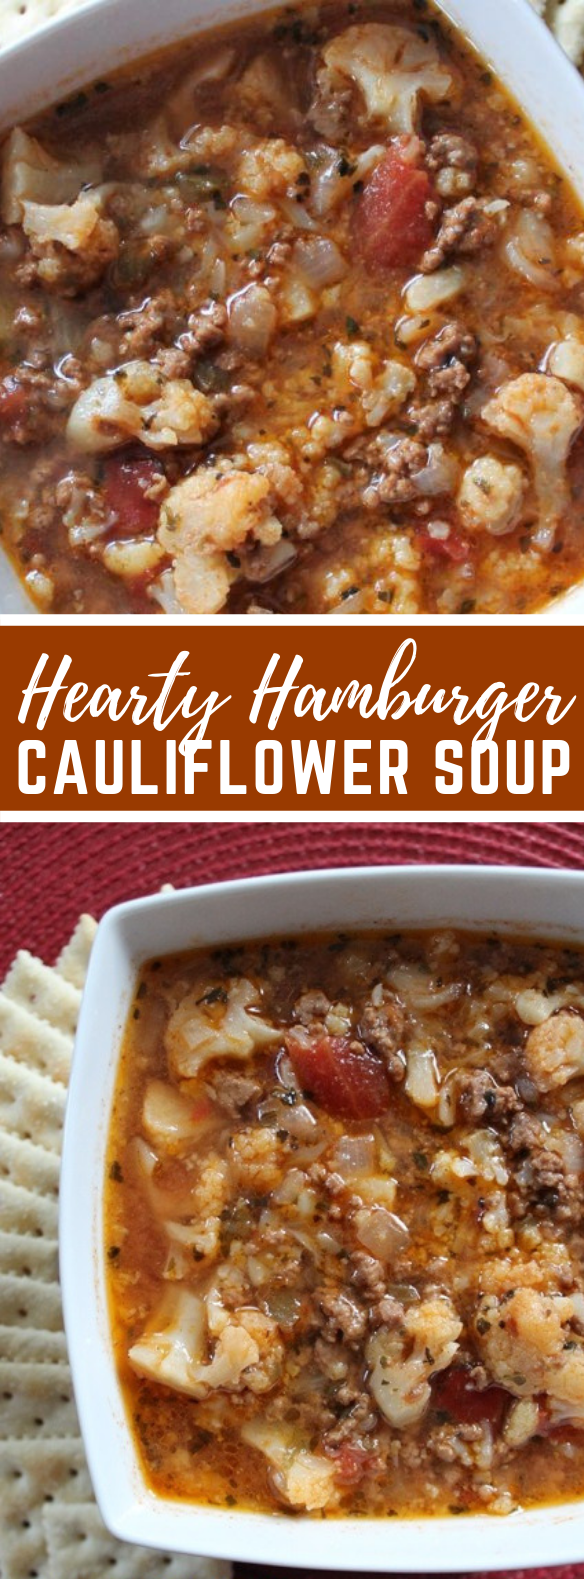 Hearty Hamburger Cauliflower Soup #ketodiet #healthyrecipe